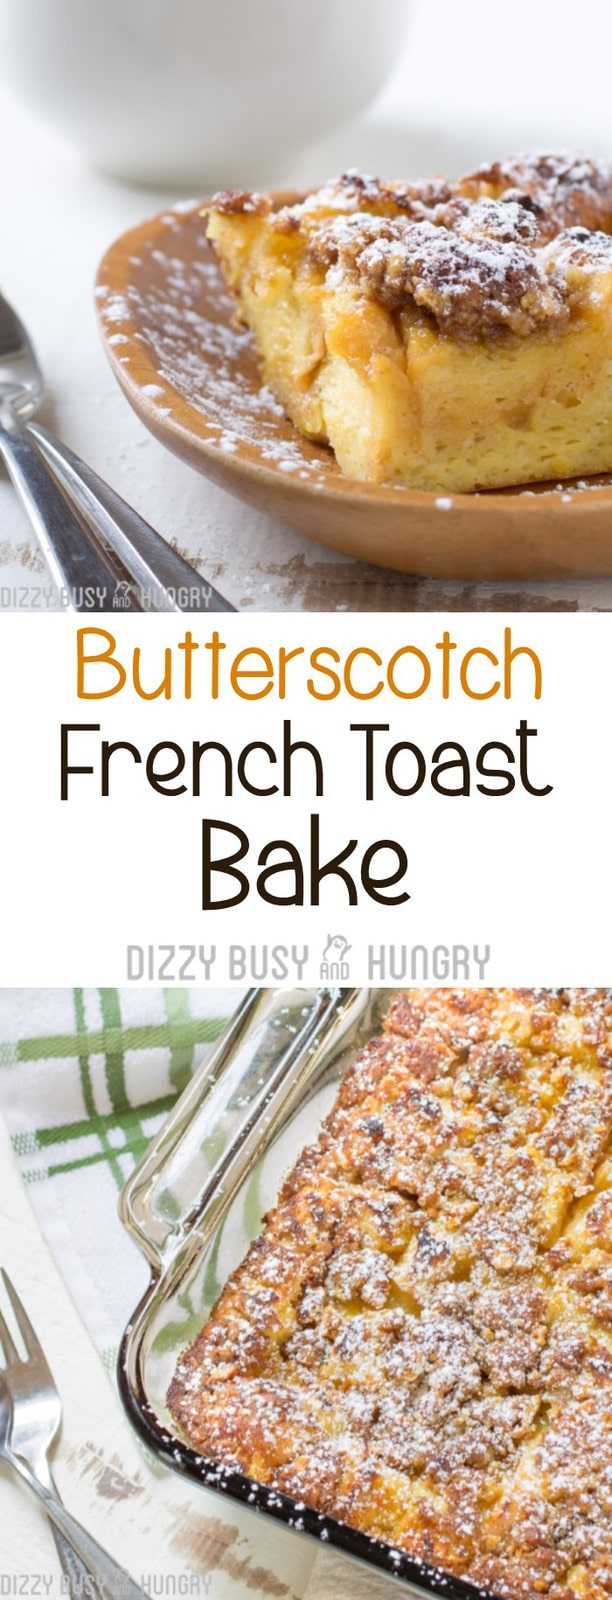 Butterscotch French Toast Bake | DizzyBusyandHungry - Easy-to-make breakfast treat with butterscotch syrup baked right in and topped with a crispy graham cracker crumble!